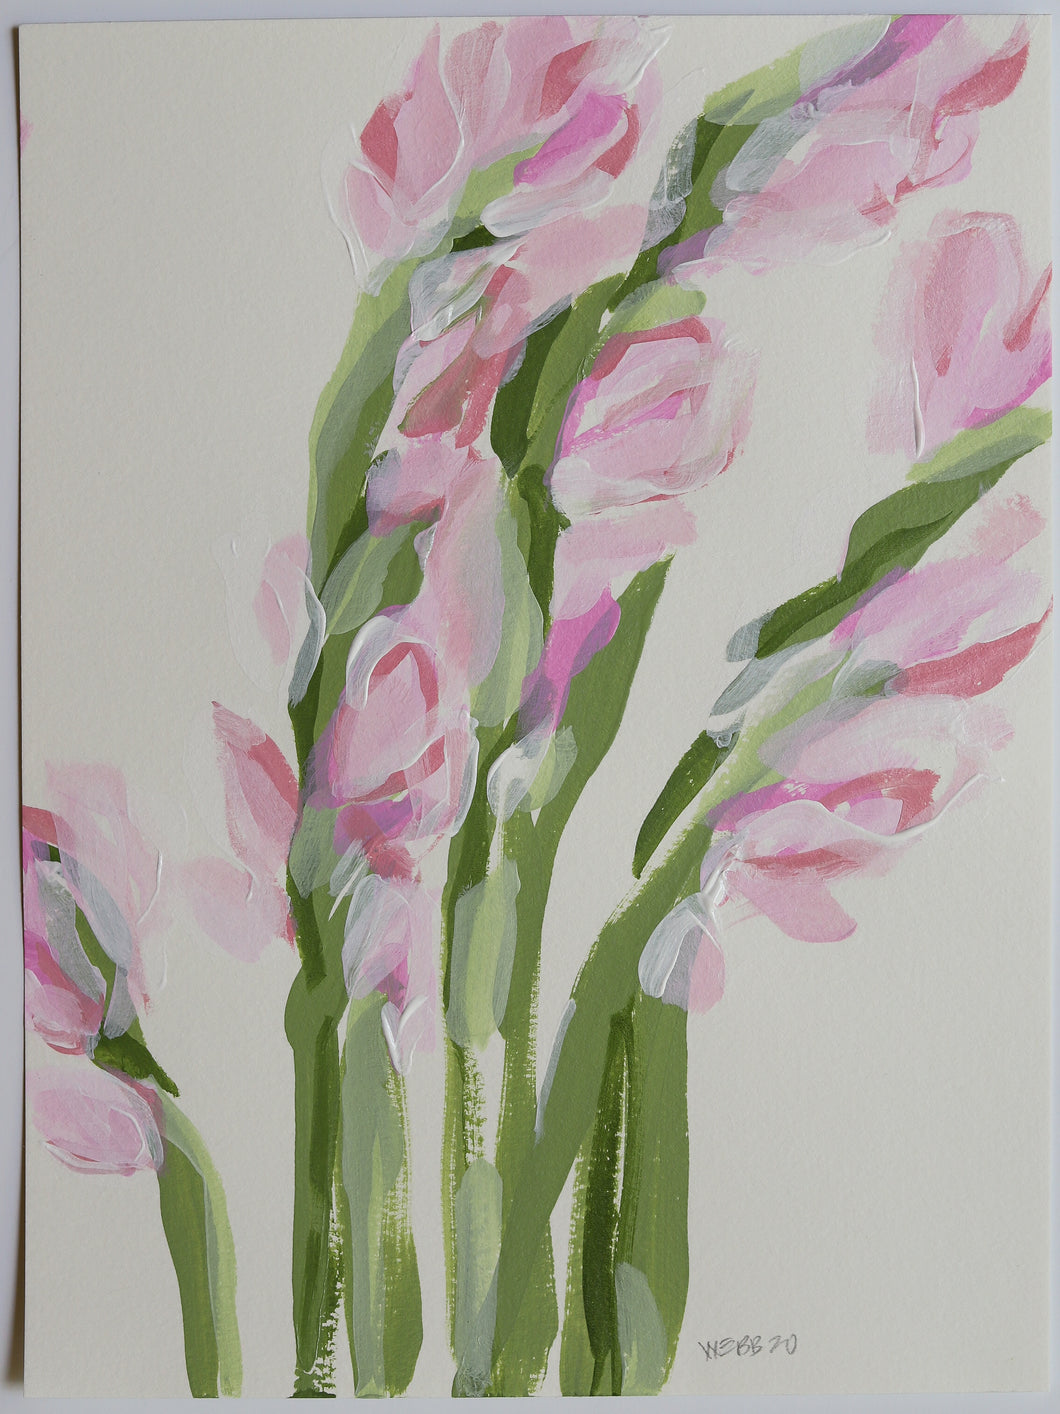 Blush Gladiolus, No. 4 - 9x12